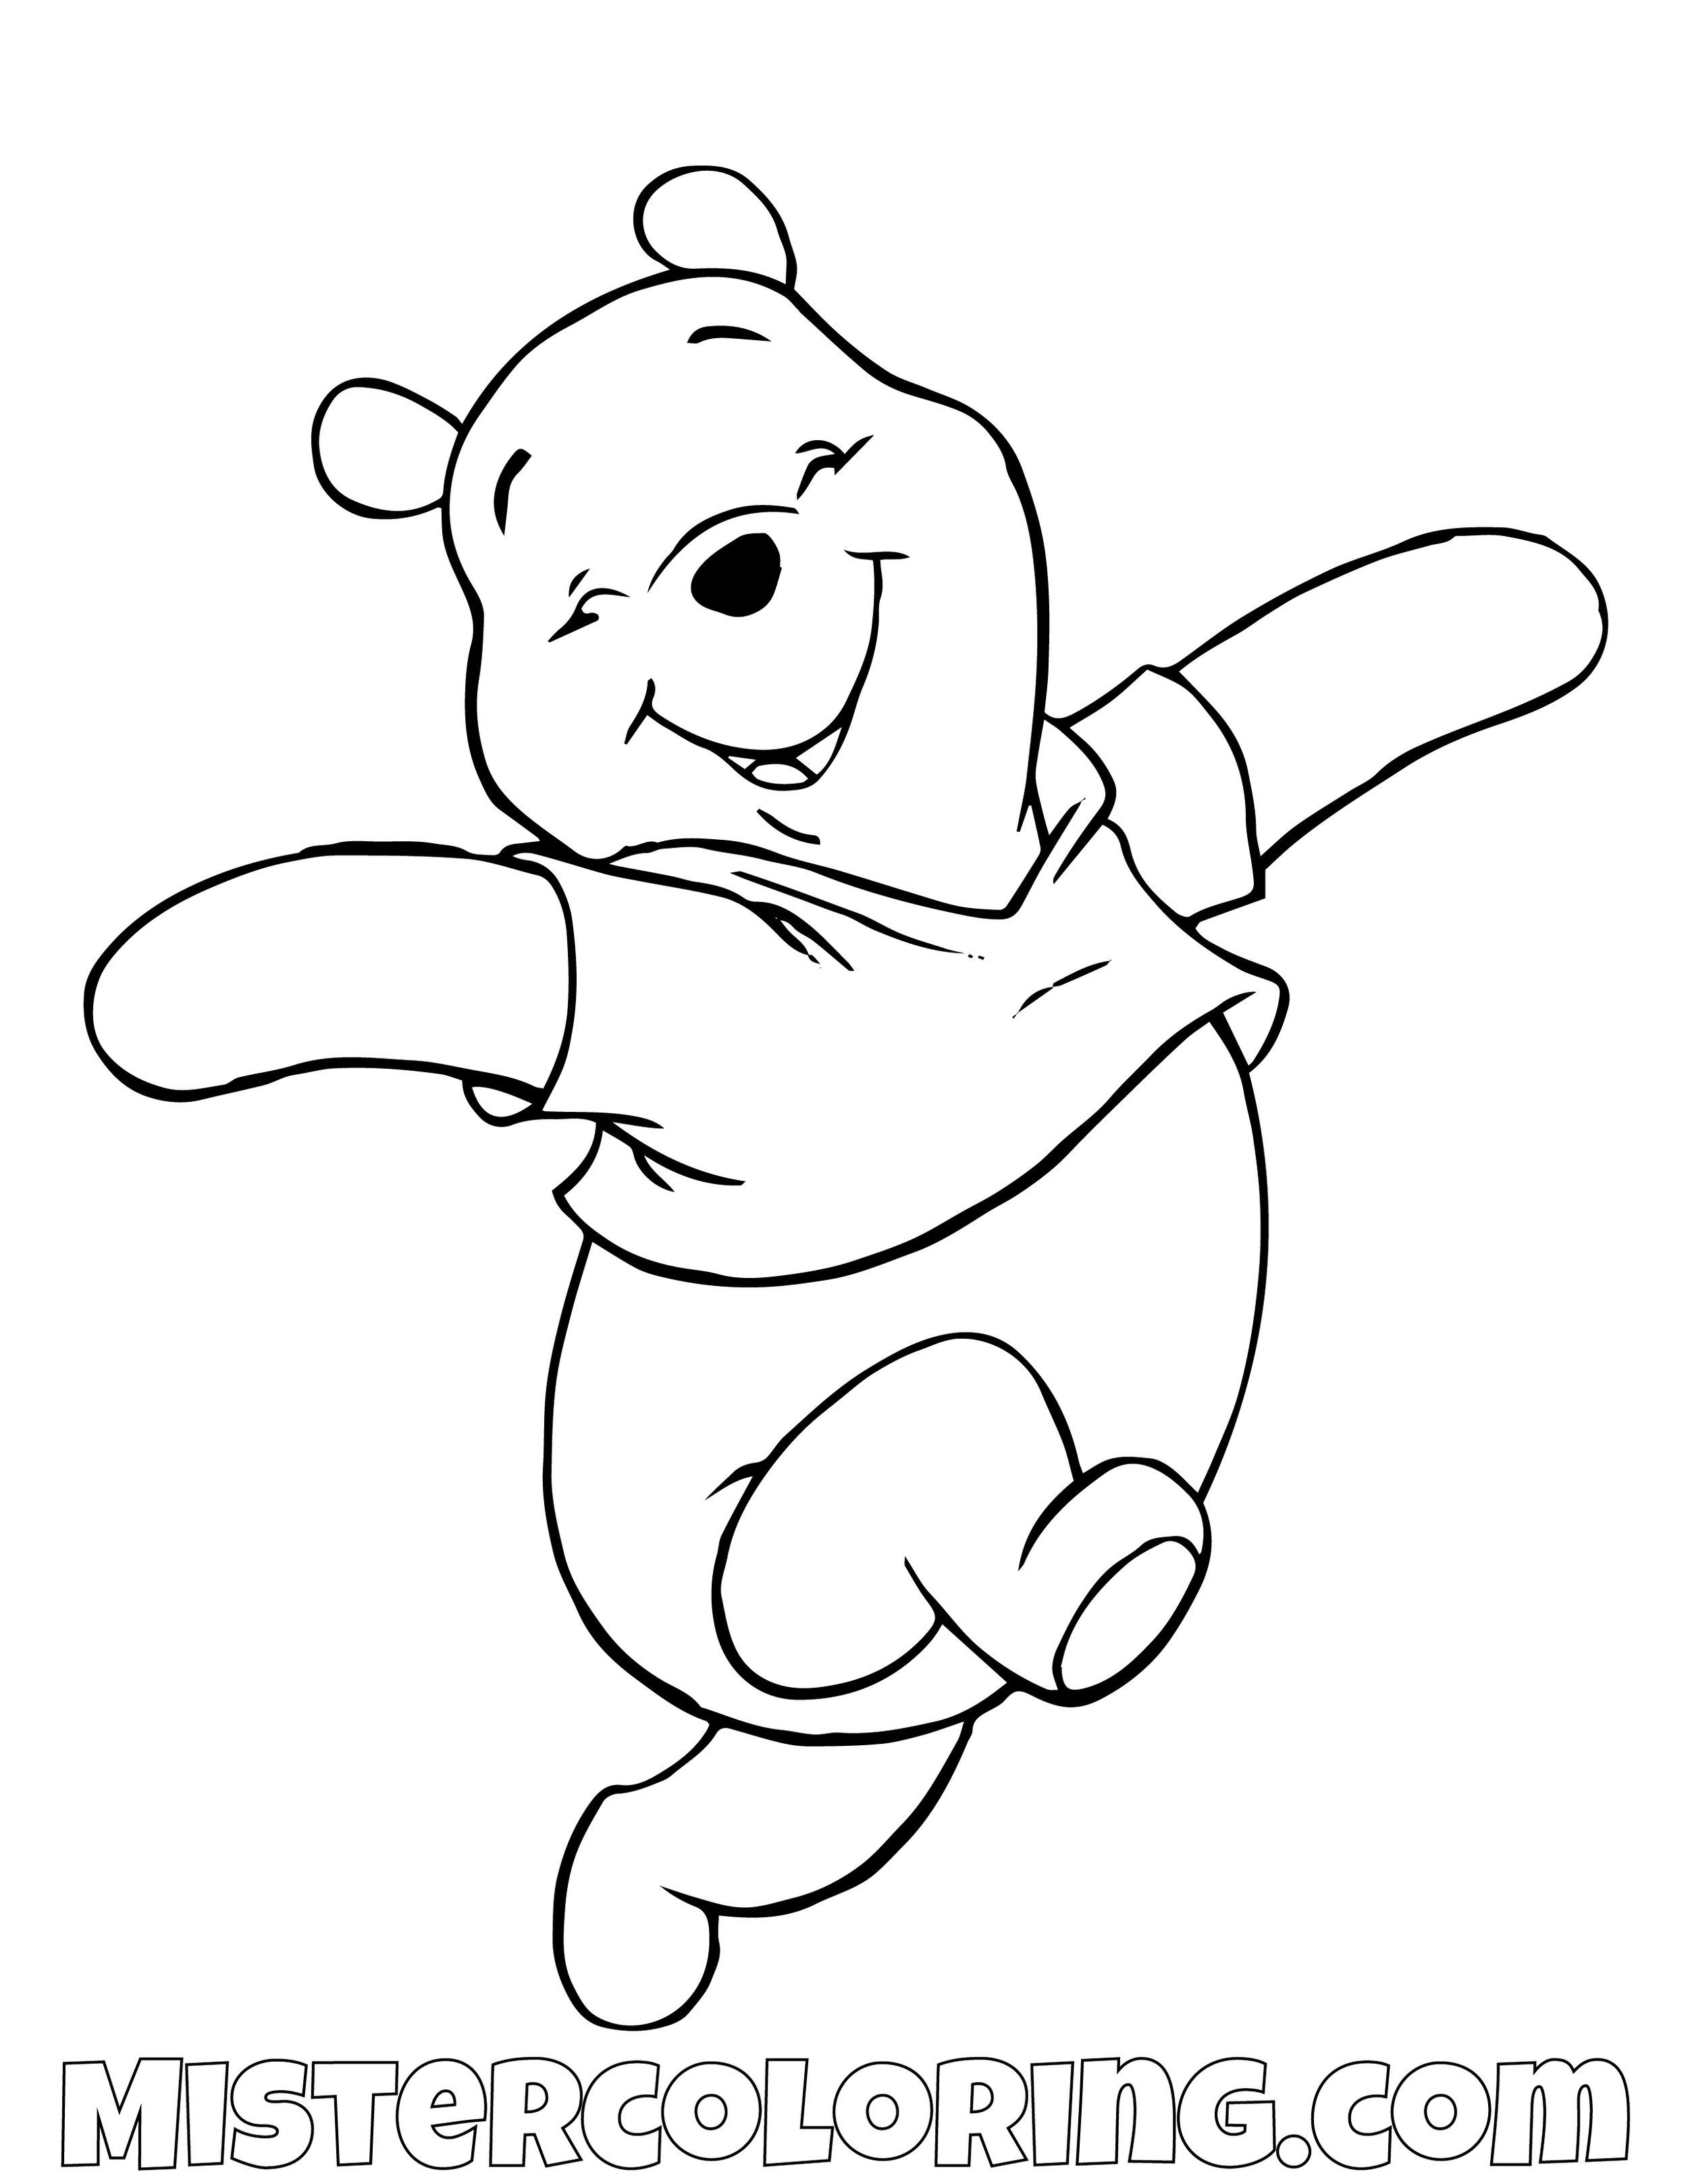 Winnie The Pooh Coloring Pages For Kids Mister Coloring Disney Coloring Pages Winnie The Pooh Drawing Bear Coloring Pages